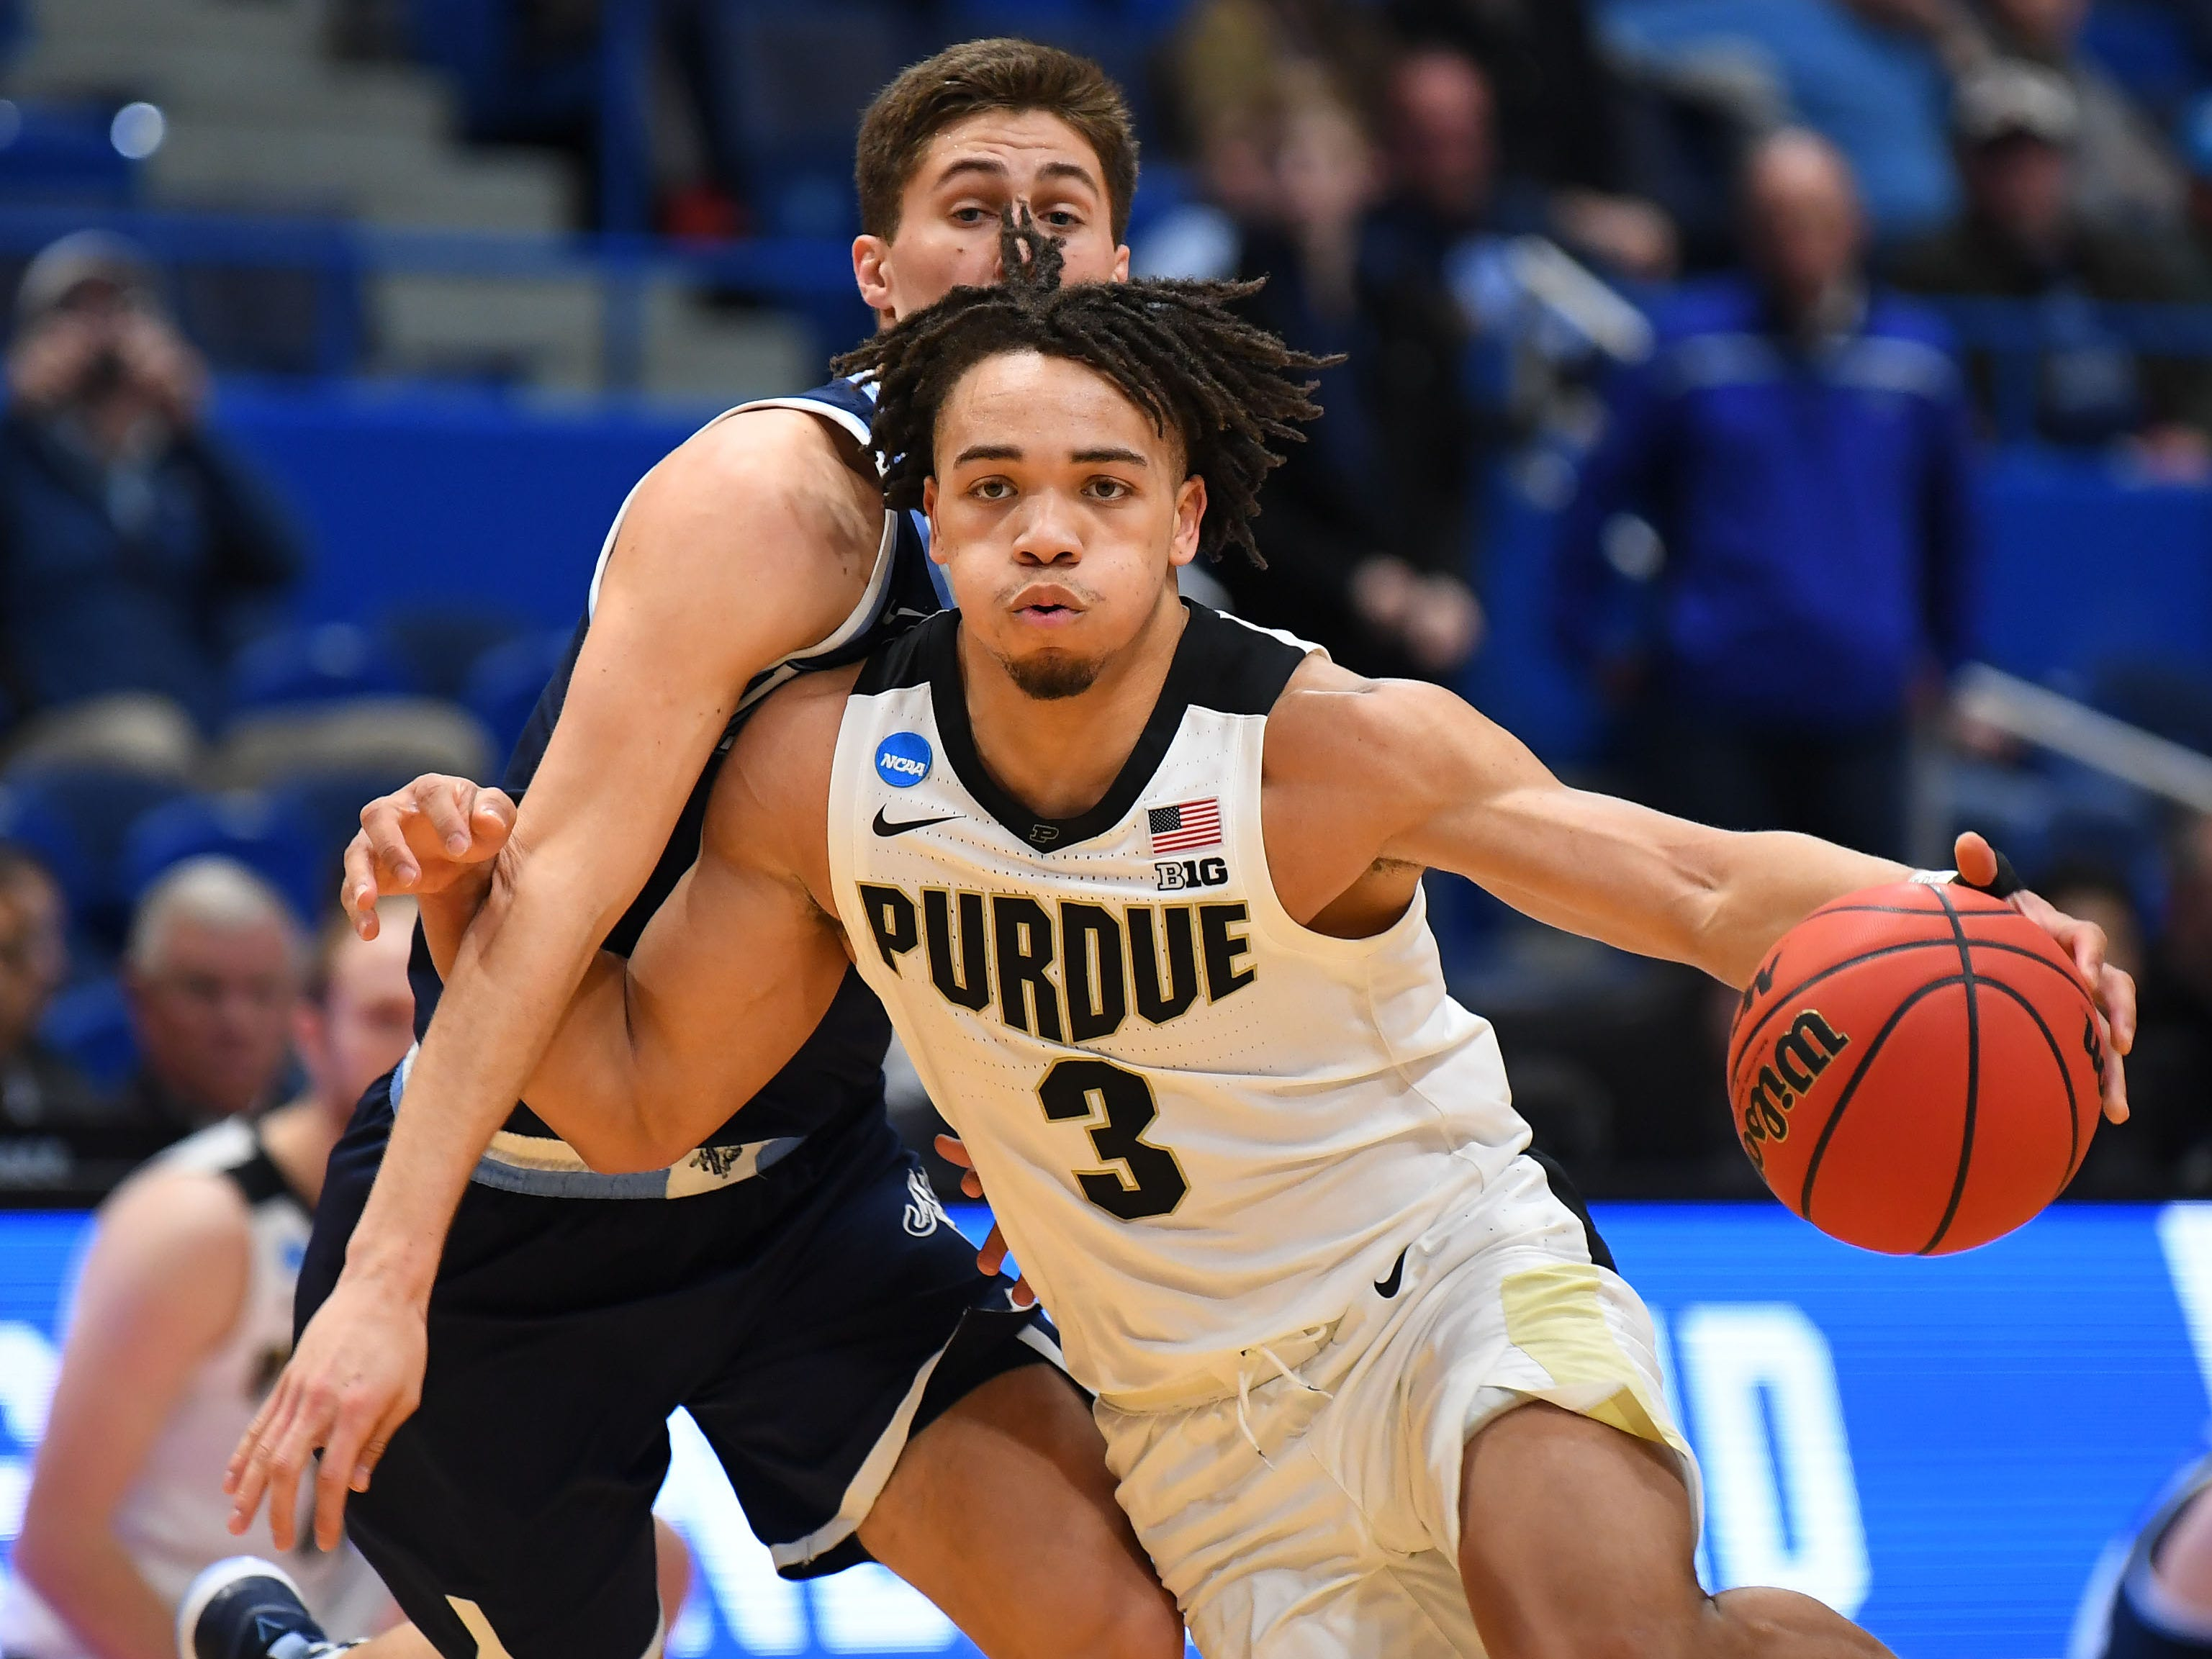 Purdue Boilermakers guard Carsen Edwards (3) drives to the basket around Villanova Wildcats guard Collin Gillespie (2) during the second half of a game in the second round of the 2019 NCAA Tournament at XL Center.